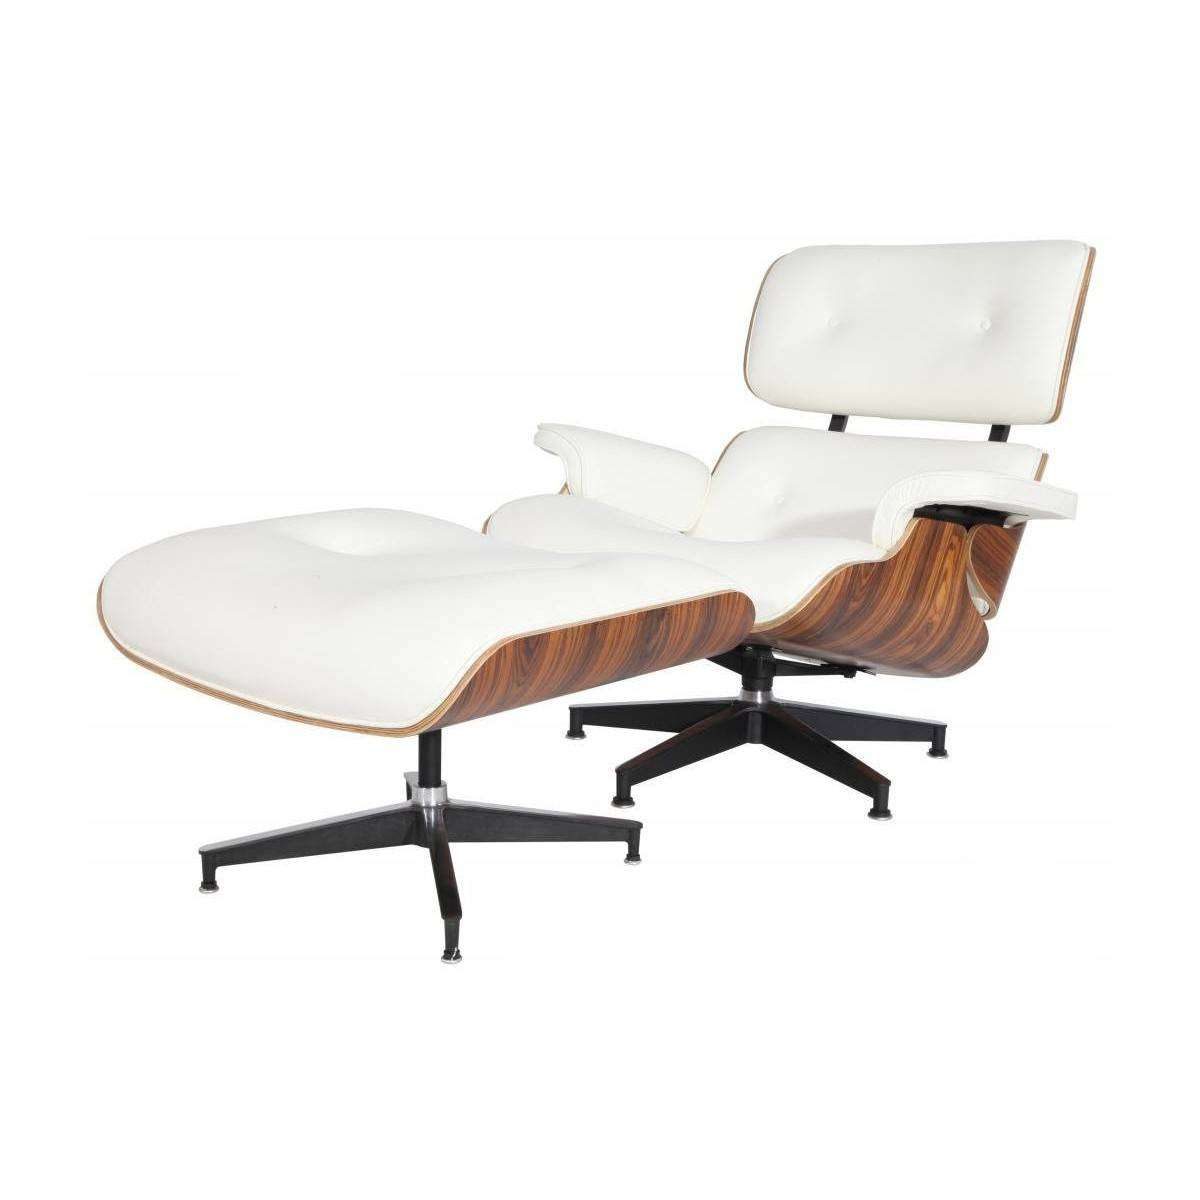 Eames chair replica eames lounge chair and ottoman image for Reproduction chaise dsw